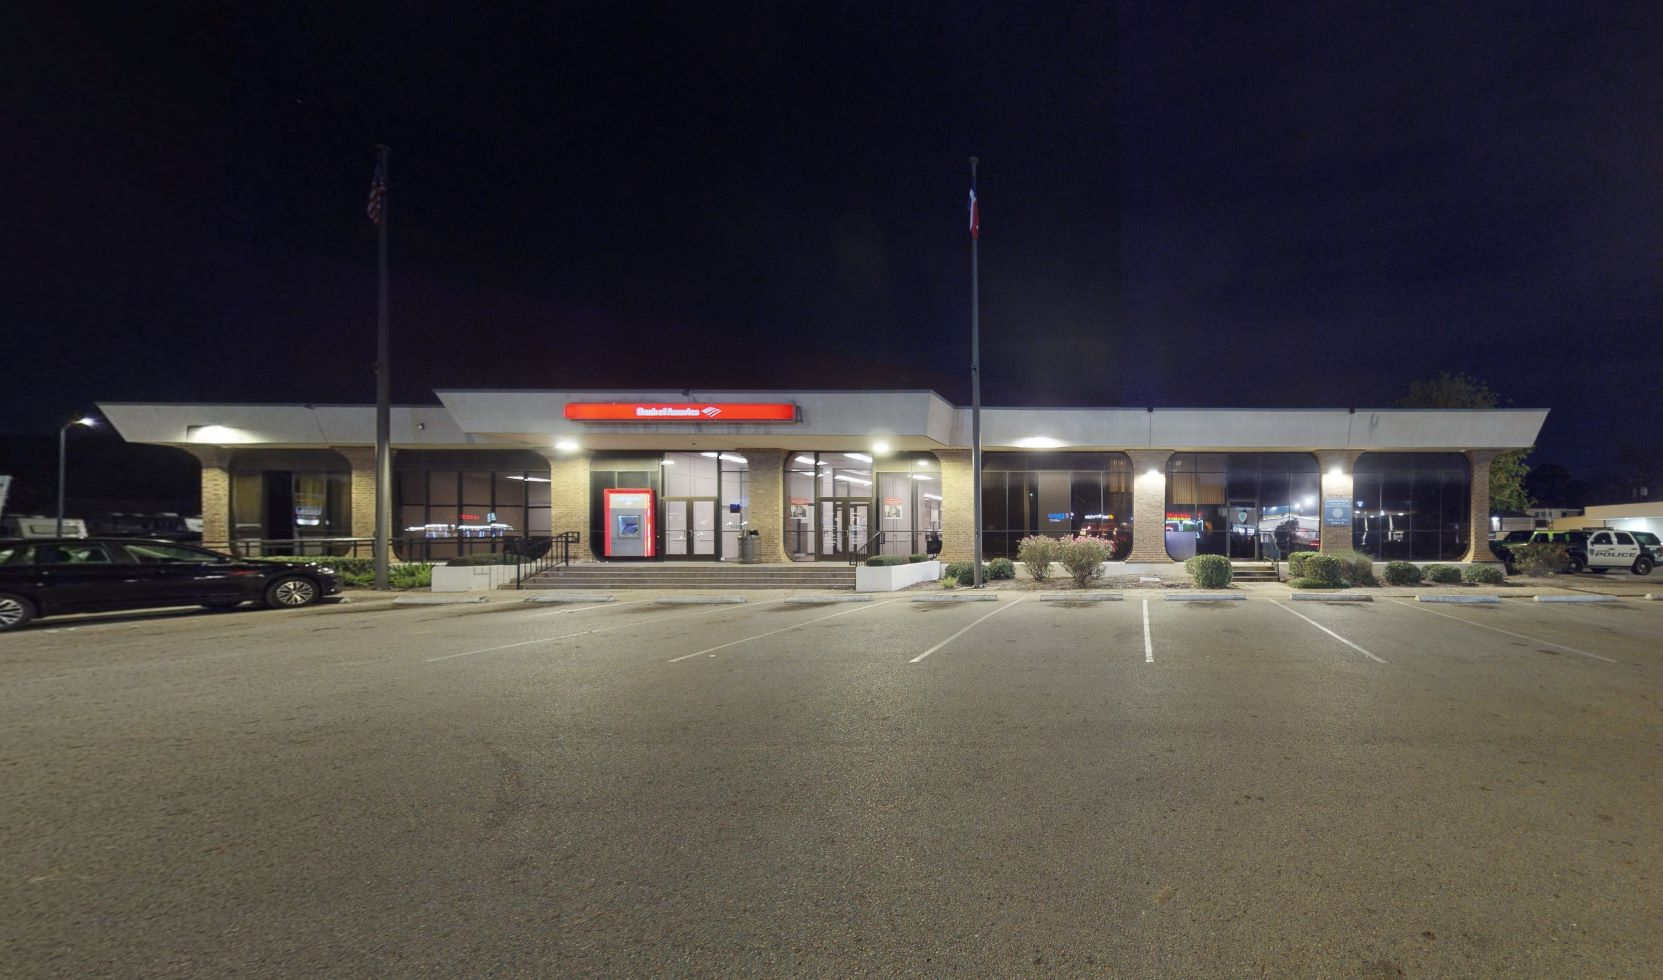 Bank of America financial center with drive-thru ATM   8400 Long Point Rd, Houston, TX 77055